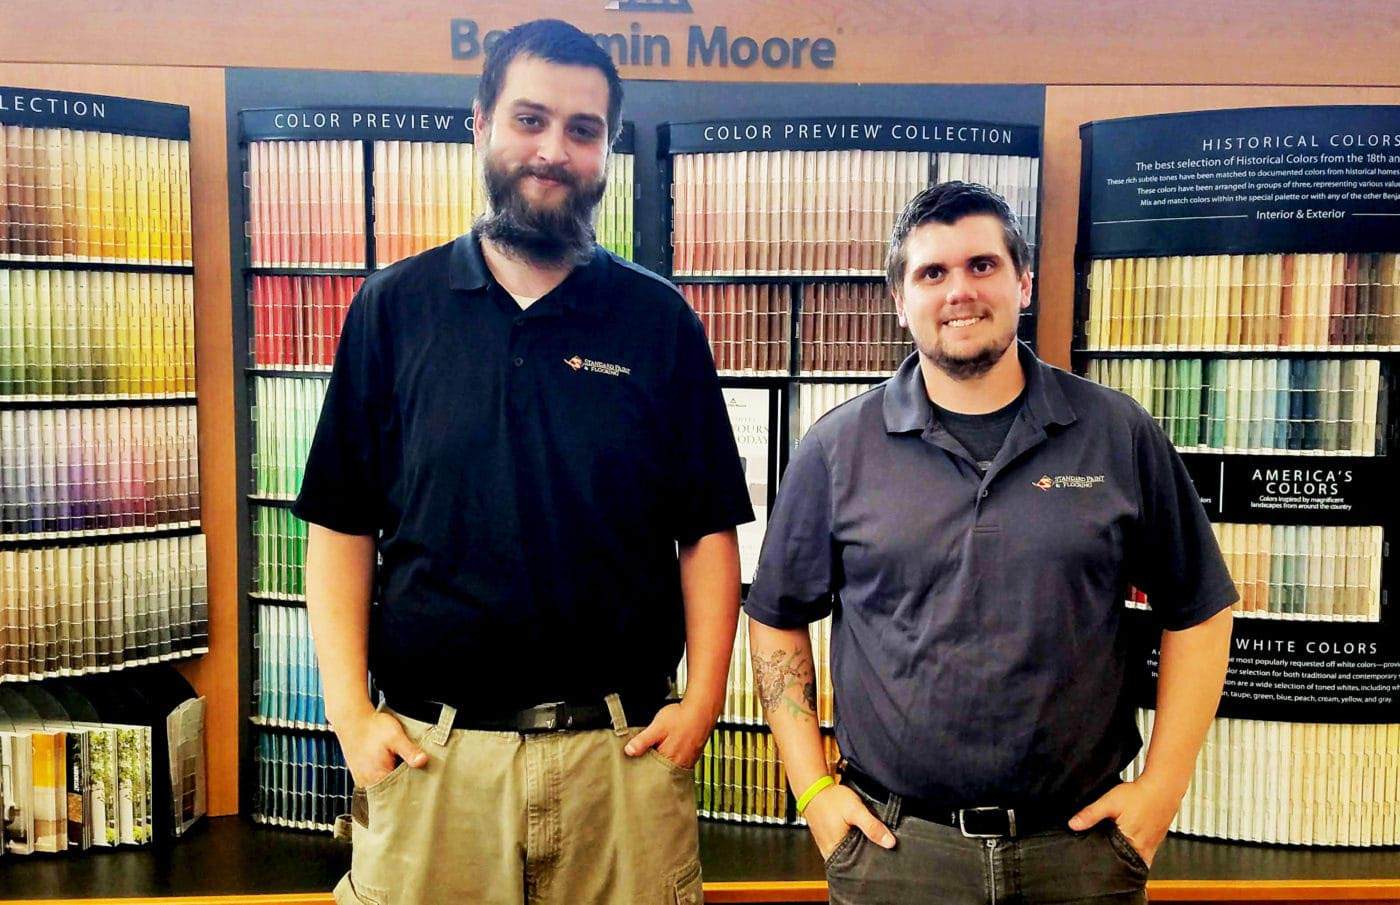 Paint Pros DaKoda and Michael smiling in front of a Benjamin Moore paint color chip display at Standard Paint & Flooring's Wenatchee location.